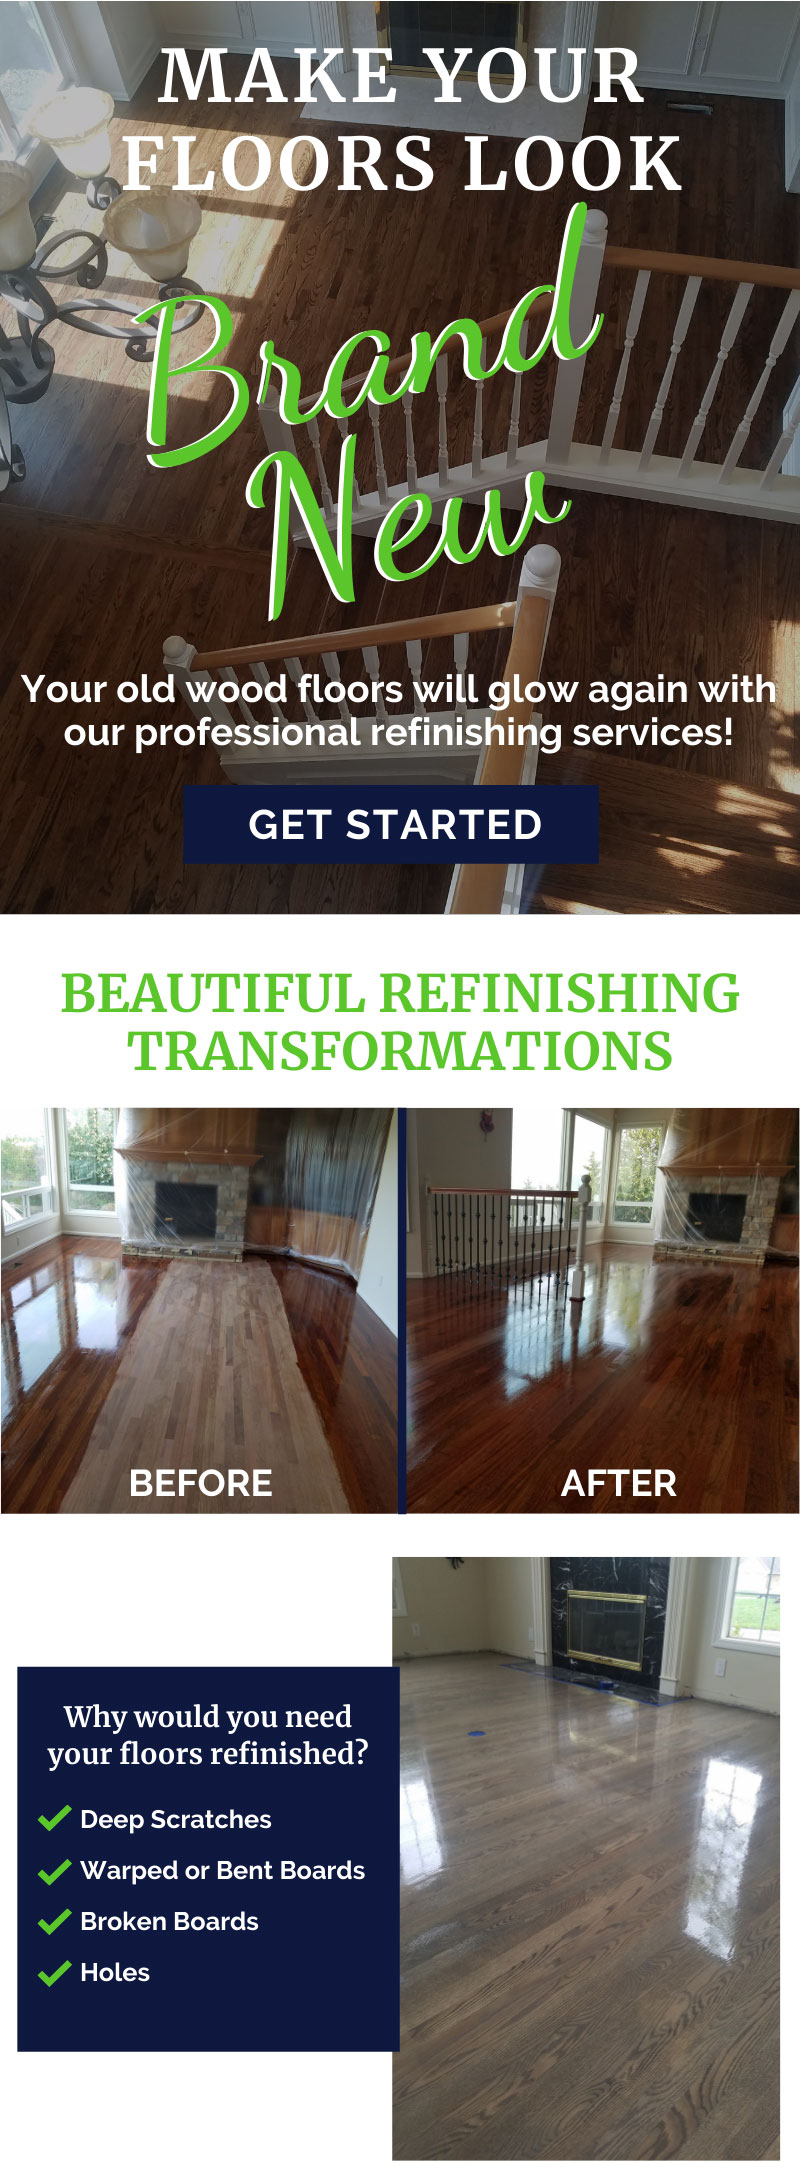 Make Your Floors Look Brand New! 5